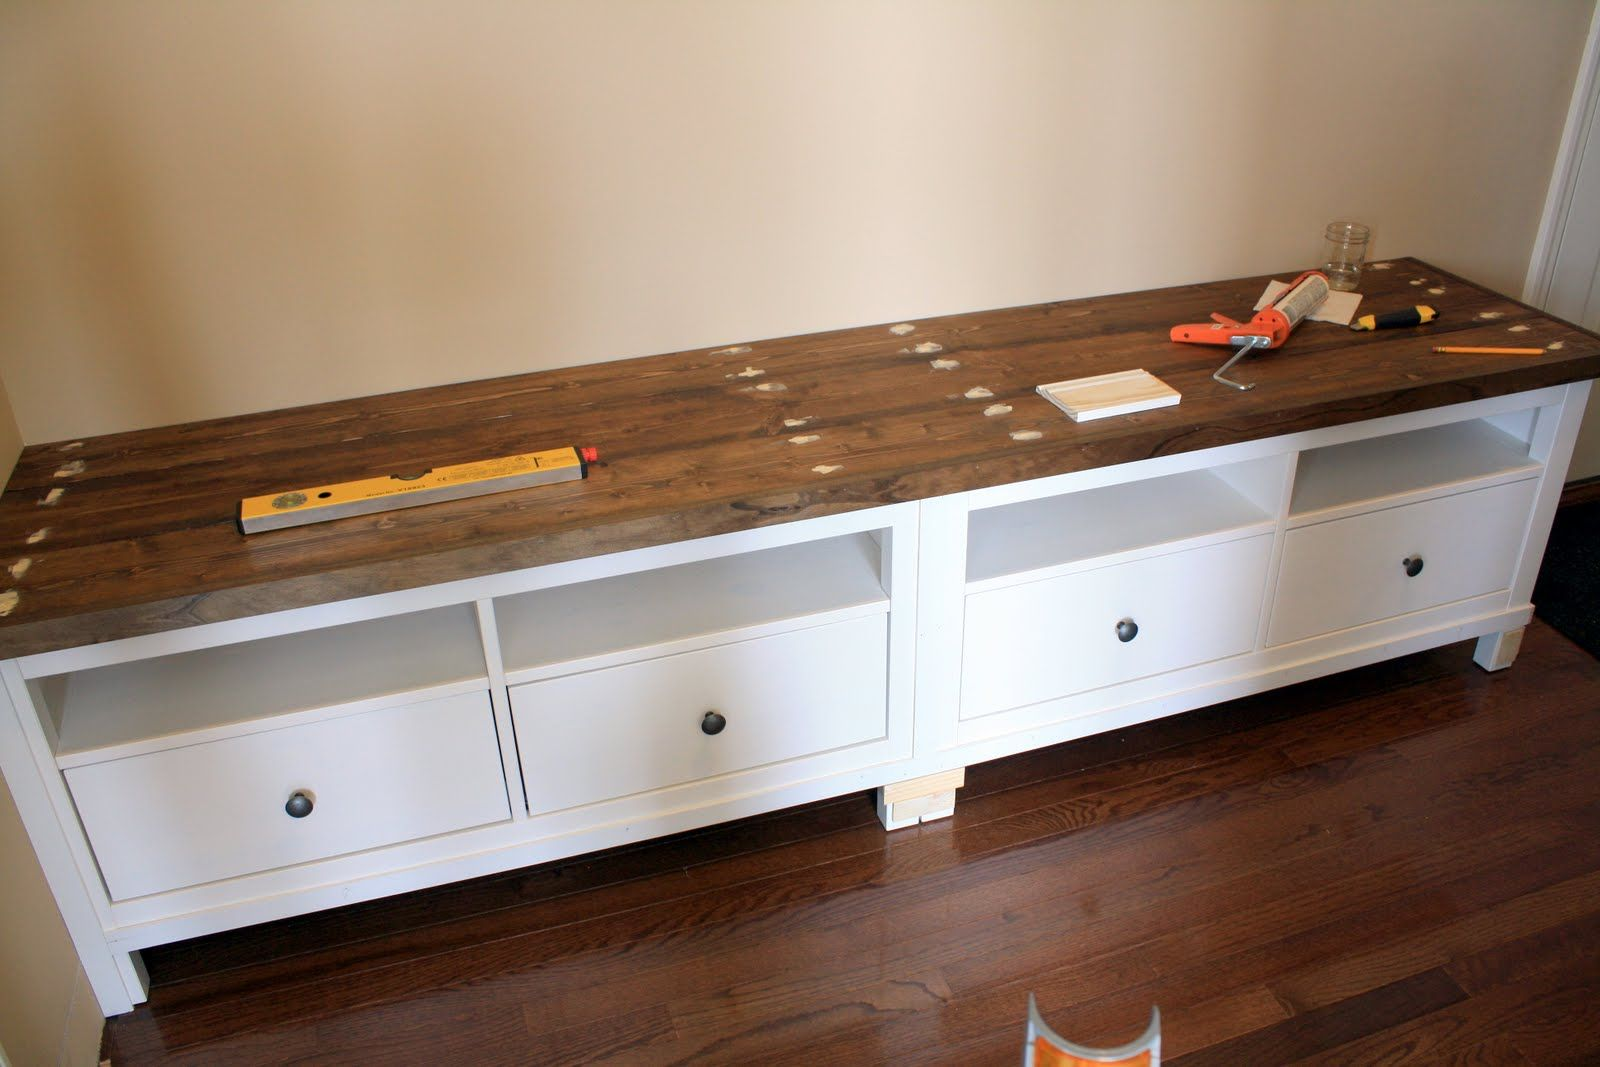 ikea cabinets turned into bench thinking window bench. Black Bedroom Furniture Sets. Home Design Ideas